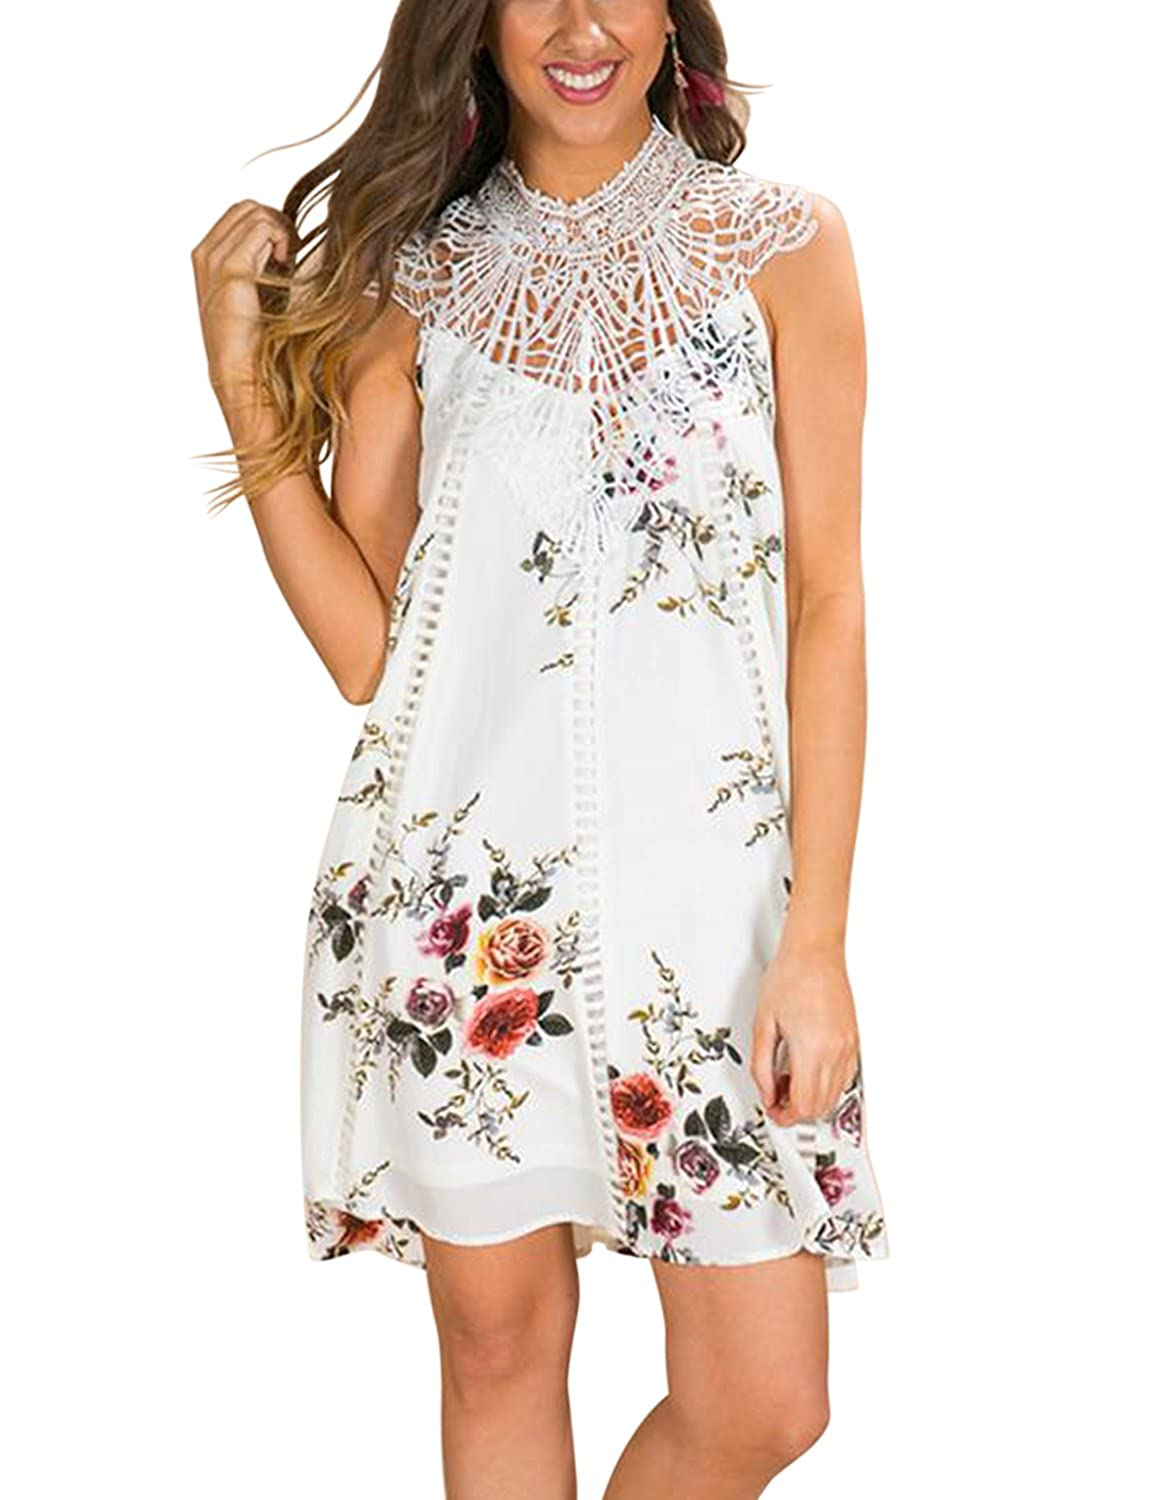 c278800958 Blooming Jelly Women Chiffon Lace Dress Flower Print High Neck Sleeveless  Back-Hole Button Dresses Loose Above Knee Midi Dresses for Women Summer  ...